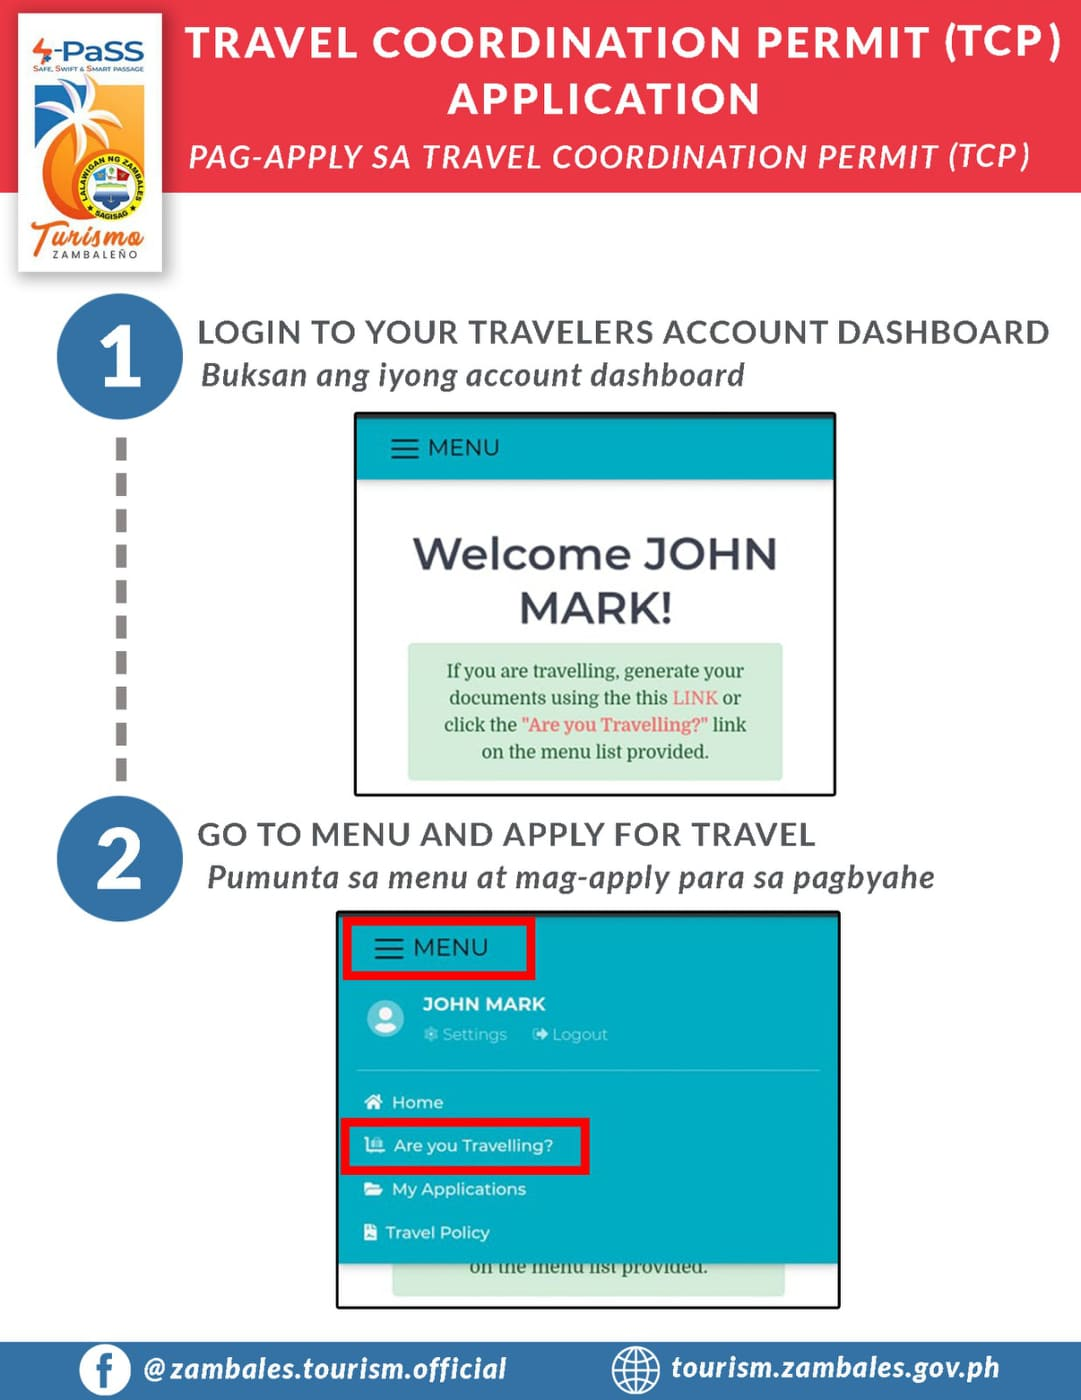 Travel Coordination Permit (TCP) Application Guide